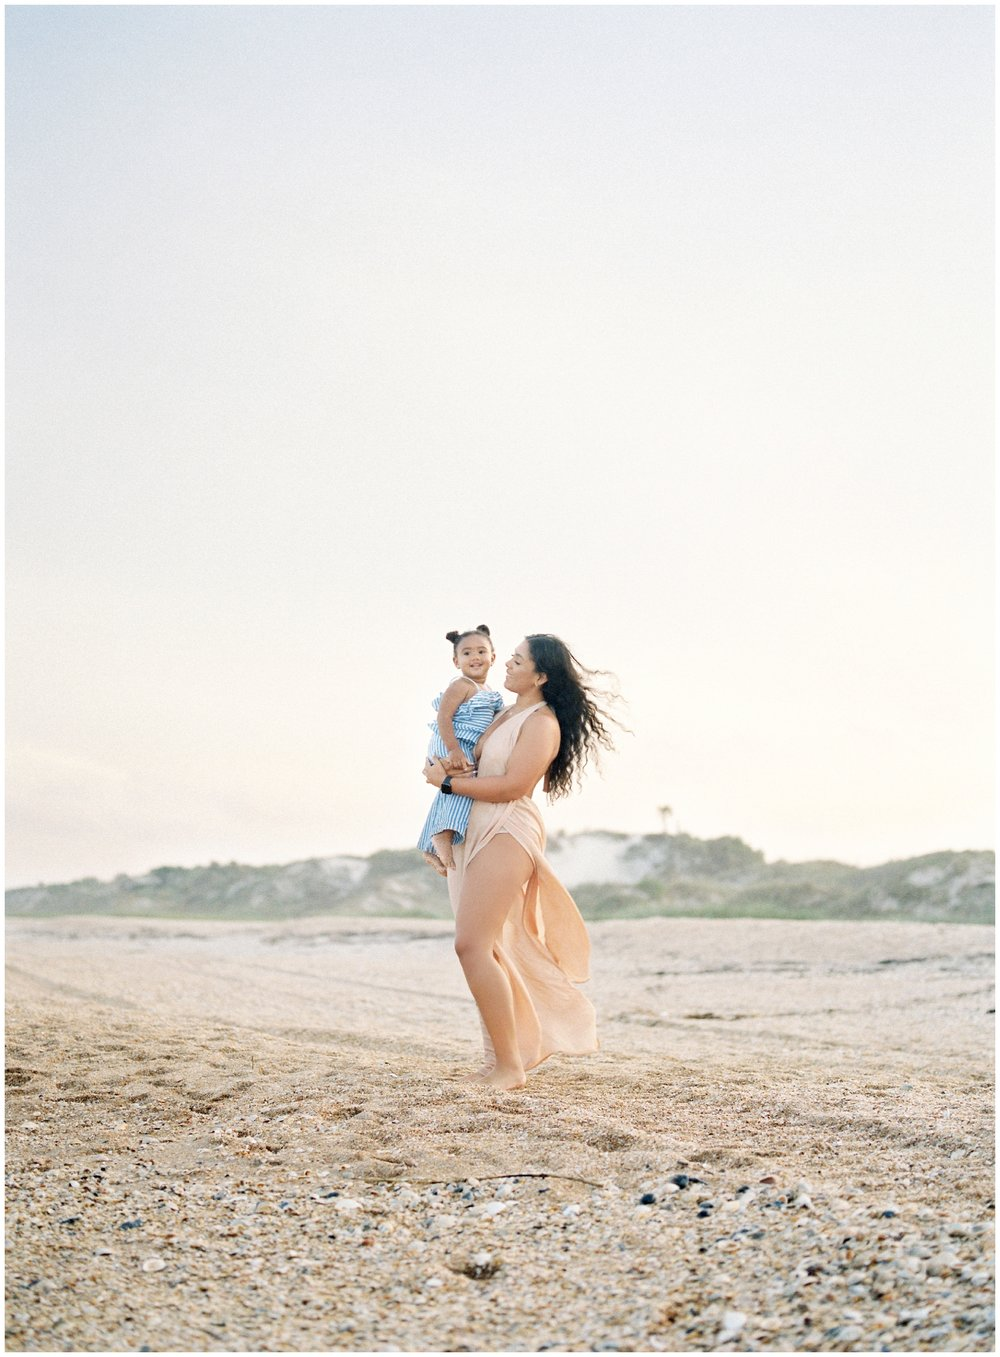 Lisa Silva Photography- Ponte Vedra Beach, St. Augustine and Jacksonville, Florida Fine Art Film Destination Wedding Photography- Family Lifestyle Session at Guana Preserve_0038a.jpg